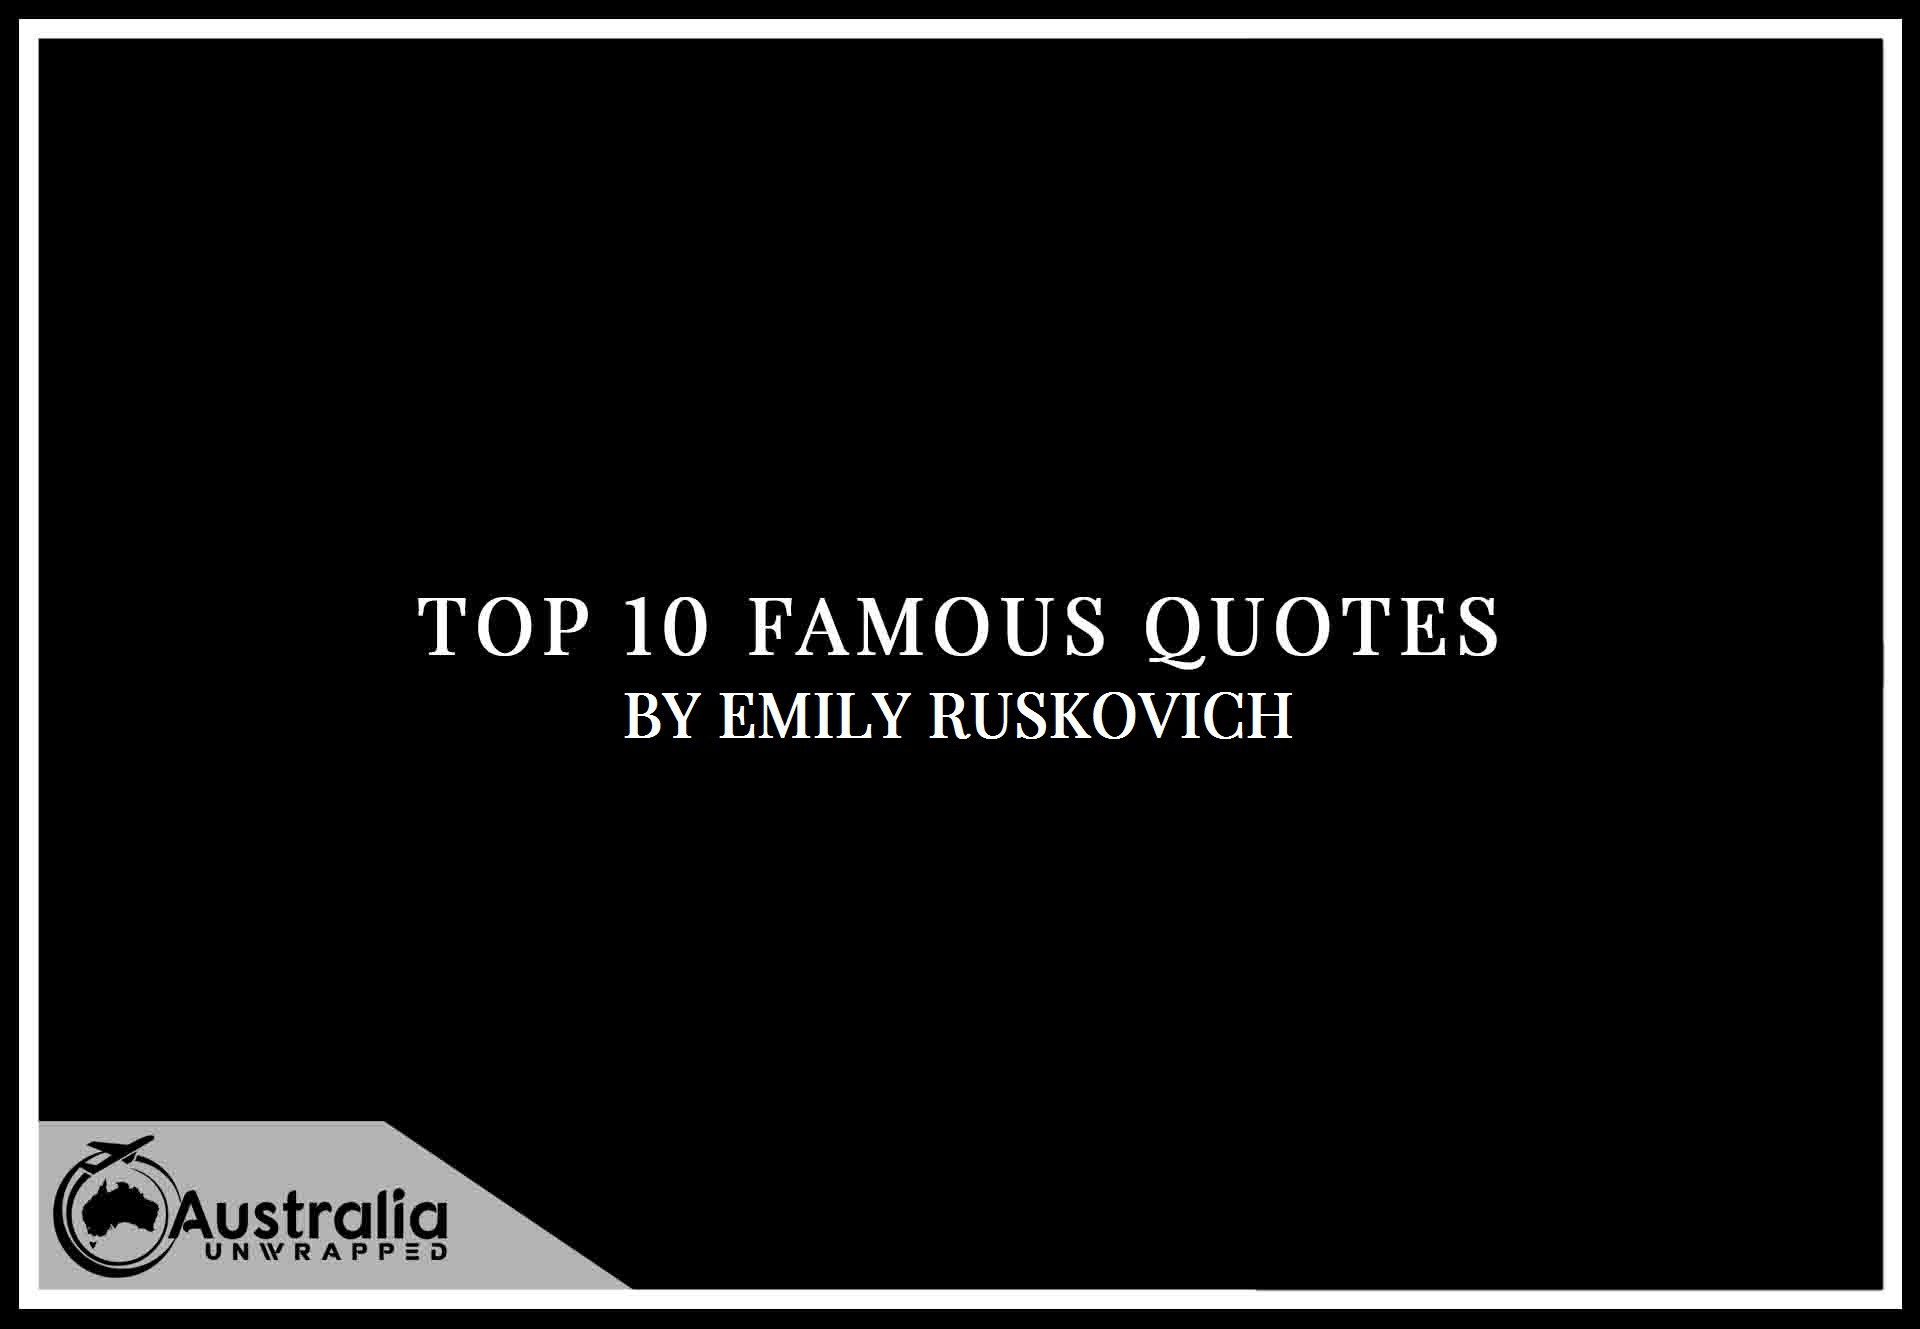 Emily Ruskovich's Top 10 Popular and Famous Quotes